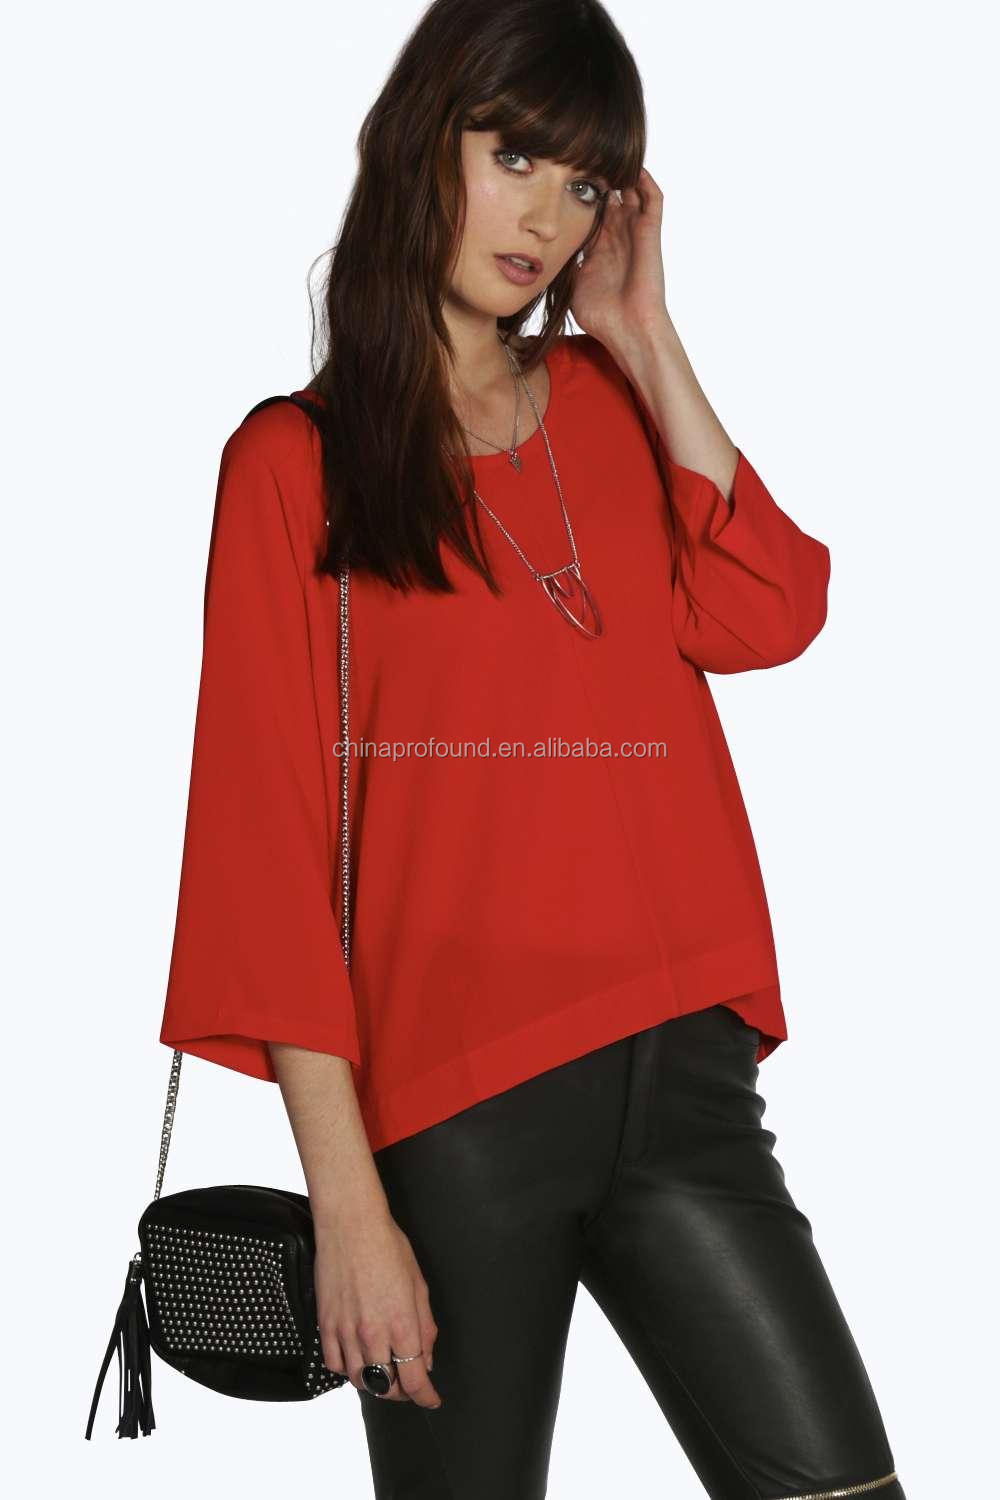 2015 Chiffon women no button down shirts/zipper blouse shirts pattern/red chiffon shirts pattern